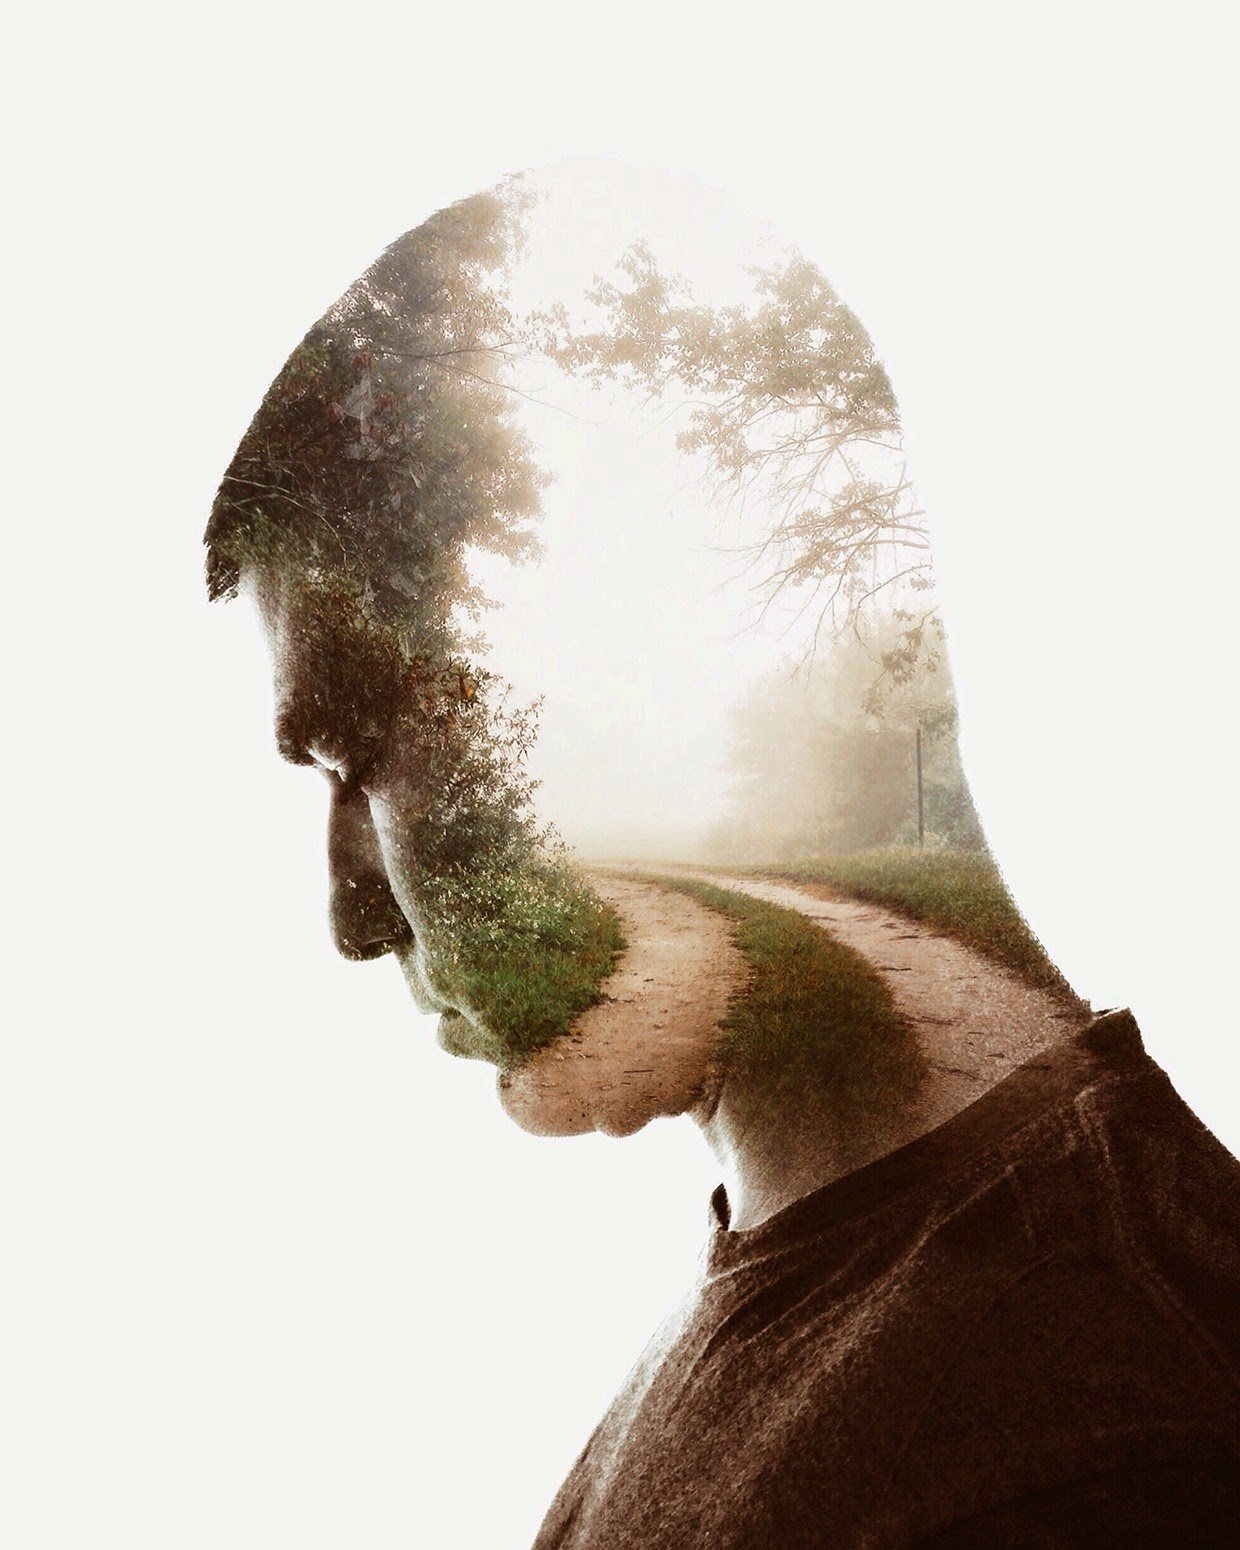 19-Brandon-Kidwell-Stories-in-Double-Exposure-Portrait-Photographs-www-designstack-co